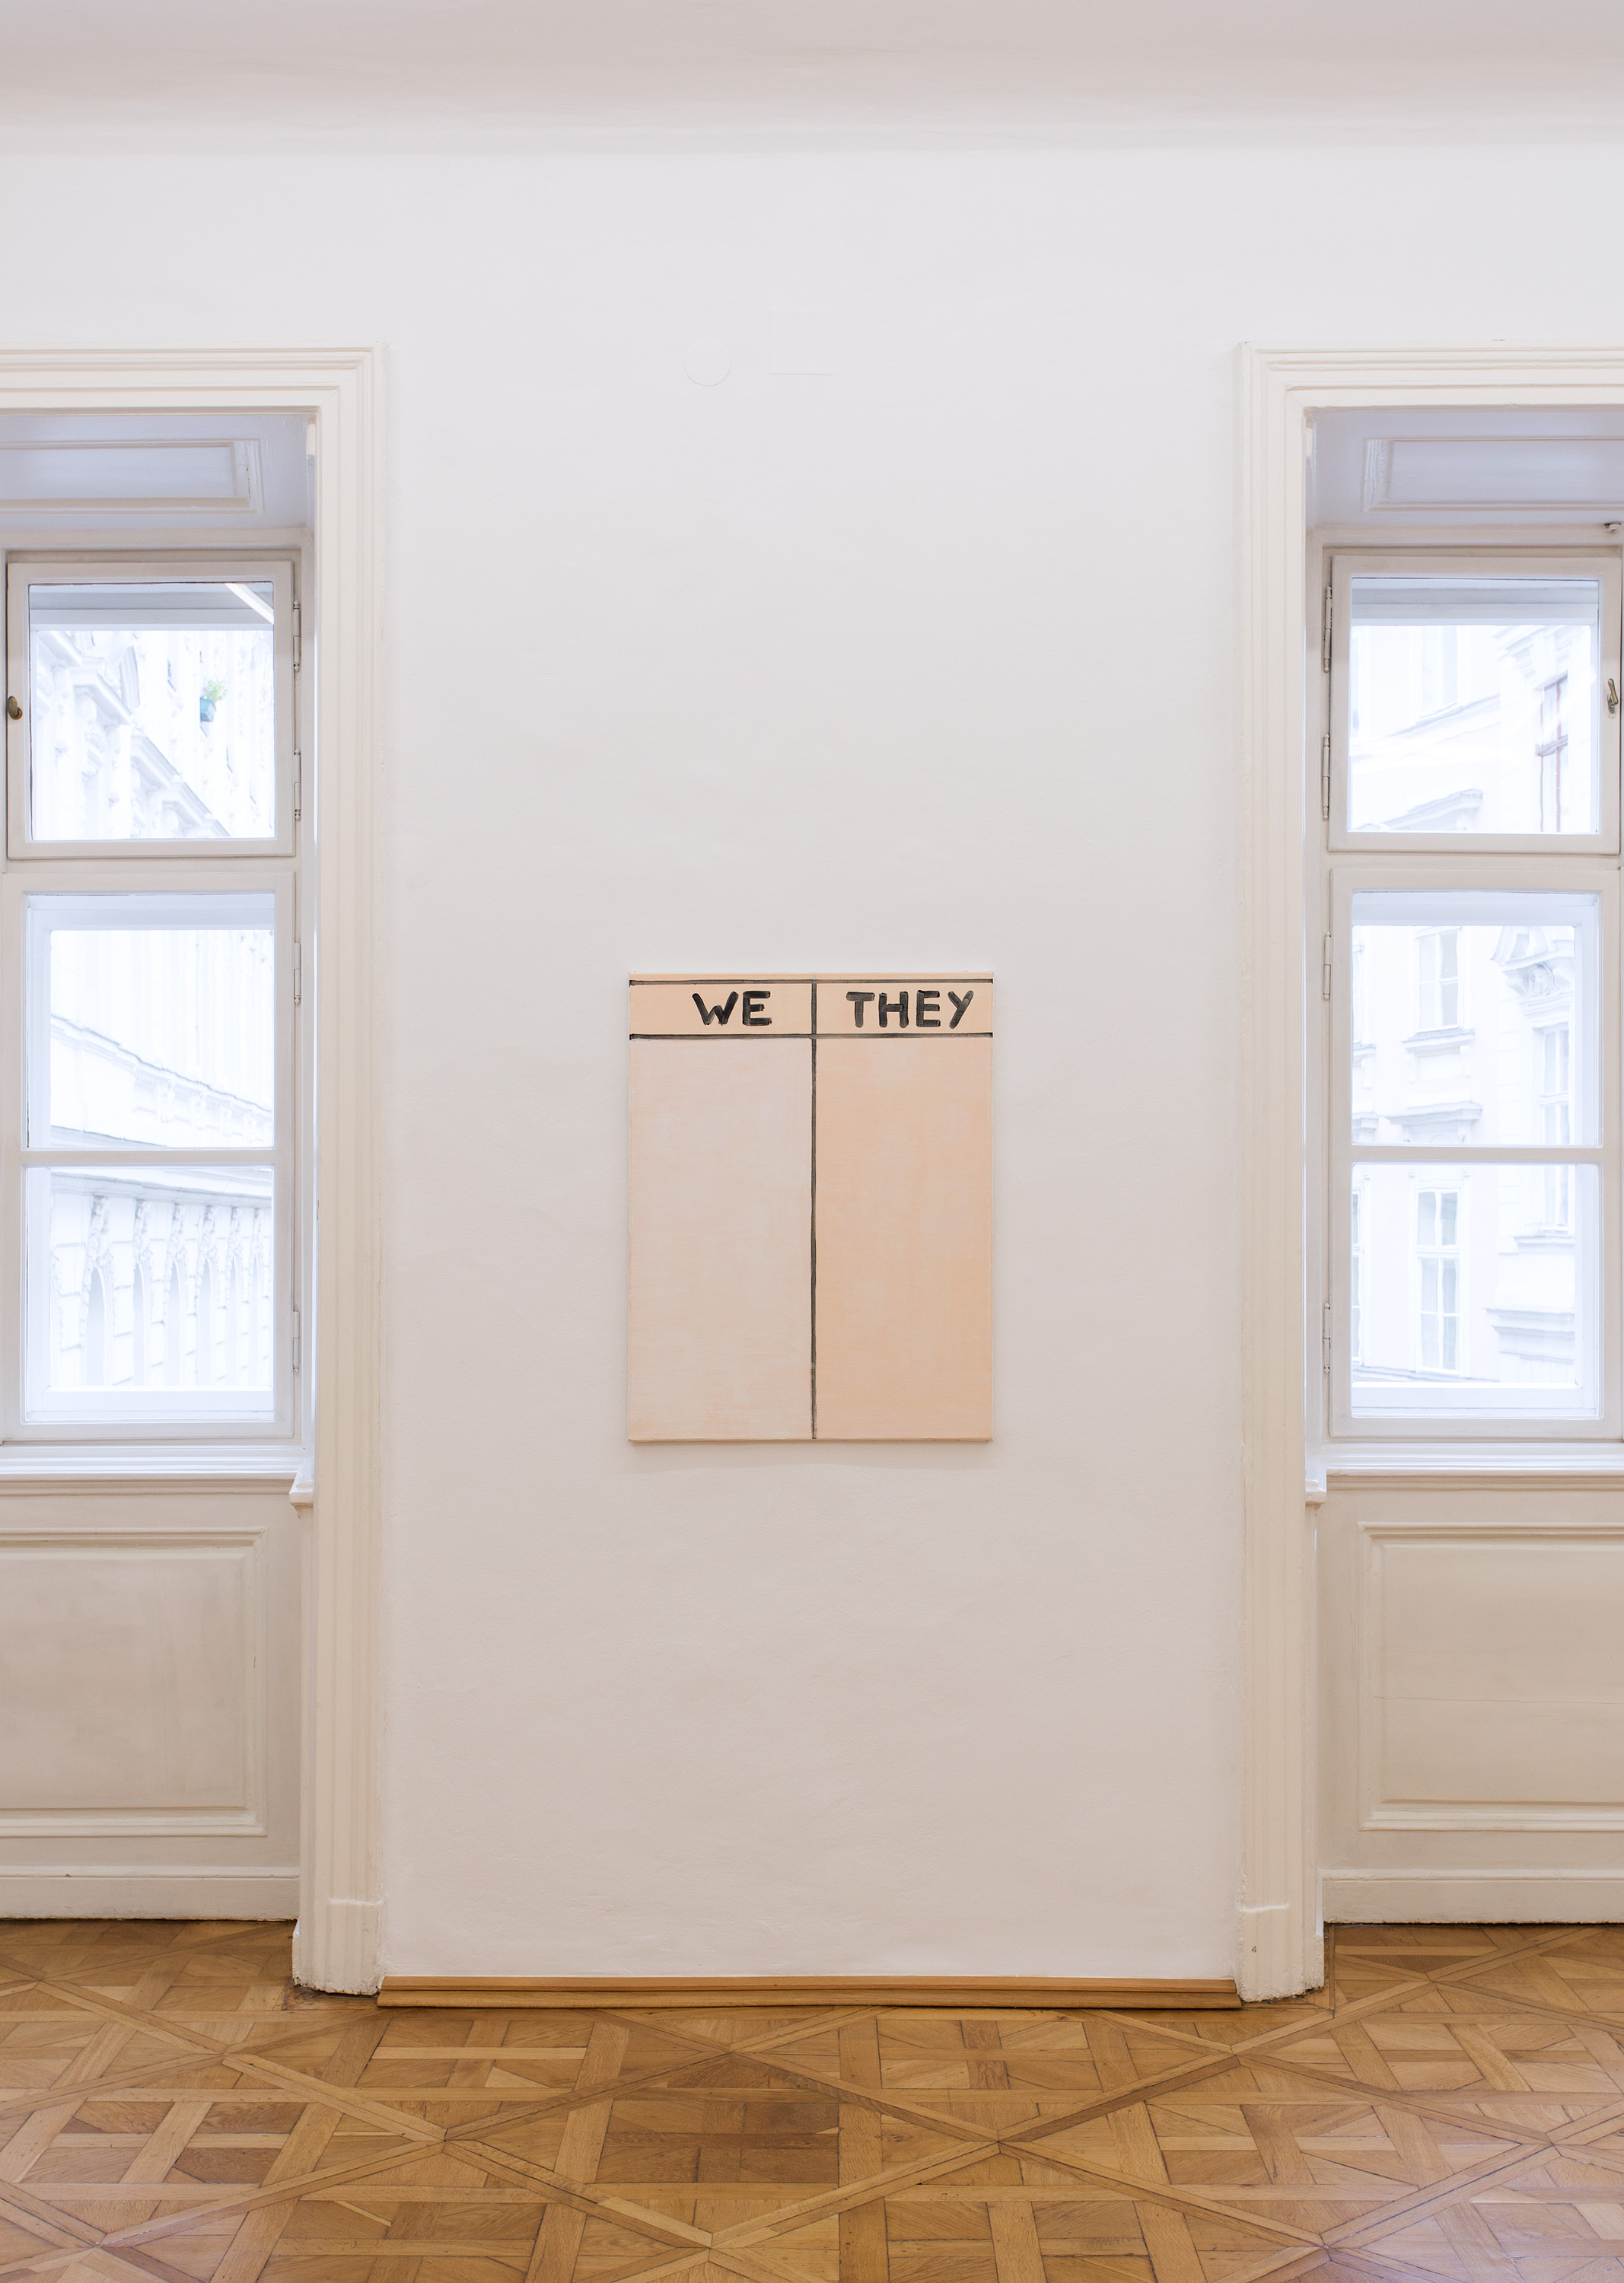 Exhibition View, Galerie nächst St. Stephan, curated by_Miguel Wandschneider, 2013, Photo: Galerie nächst St. Stephan